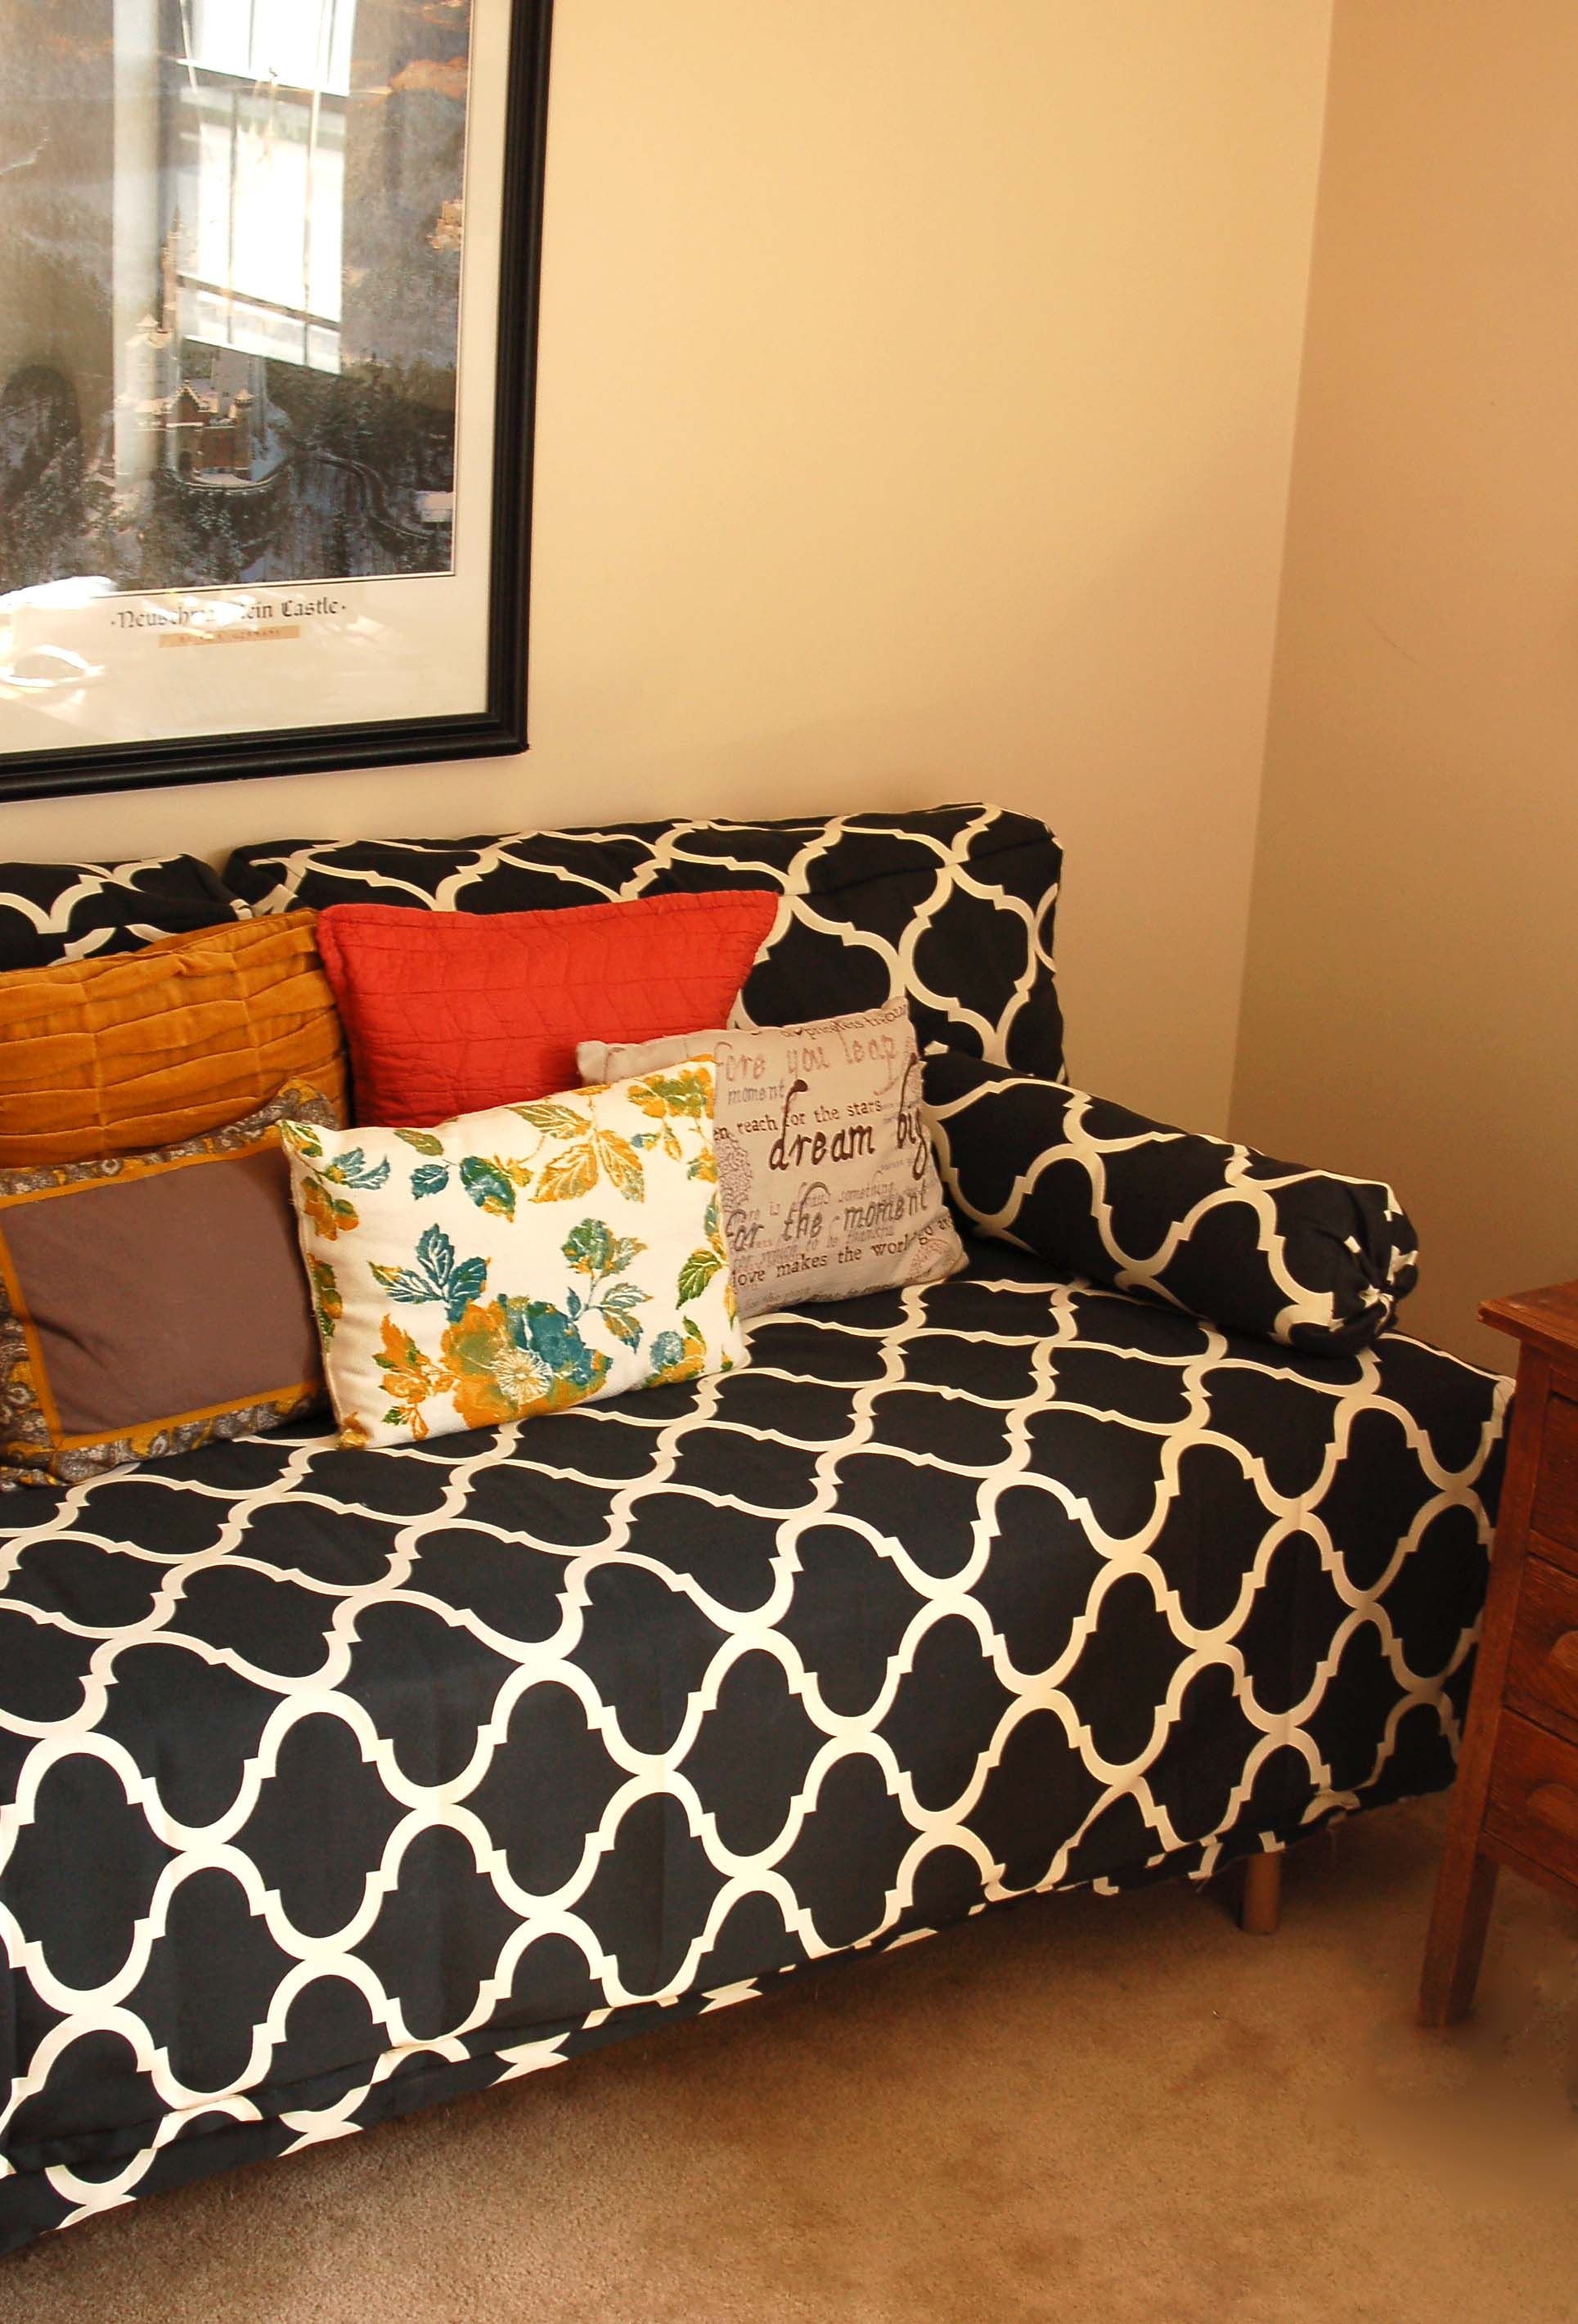 Daybed Sofa Cover Leather Blackburn Twin Bed Made To Look Like A Couch Do This By Making